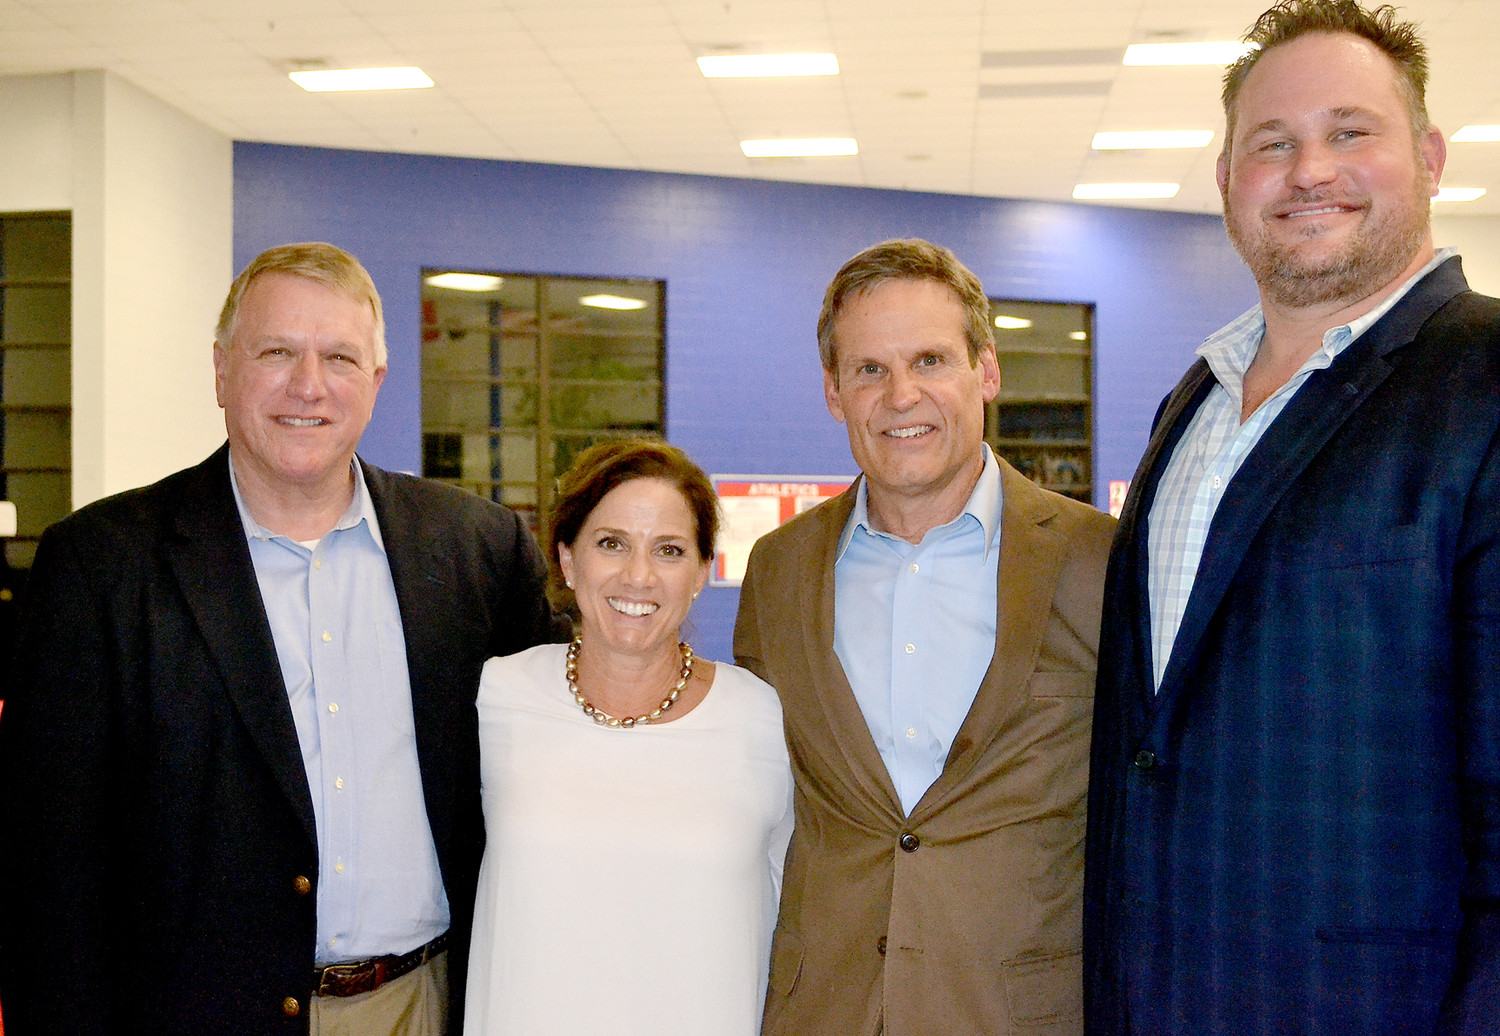 BILL LEE, who is running for Tennessee governor, was one of the candidates who spoke at the Reagan Day Dinner. From left are Bradley County Republican Chairman Richard Burnette; Maria and Bill Lee; and former Republican Chairman Jonathan Cantrell.